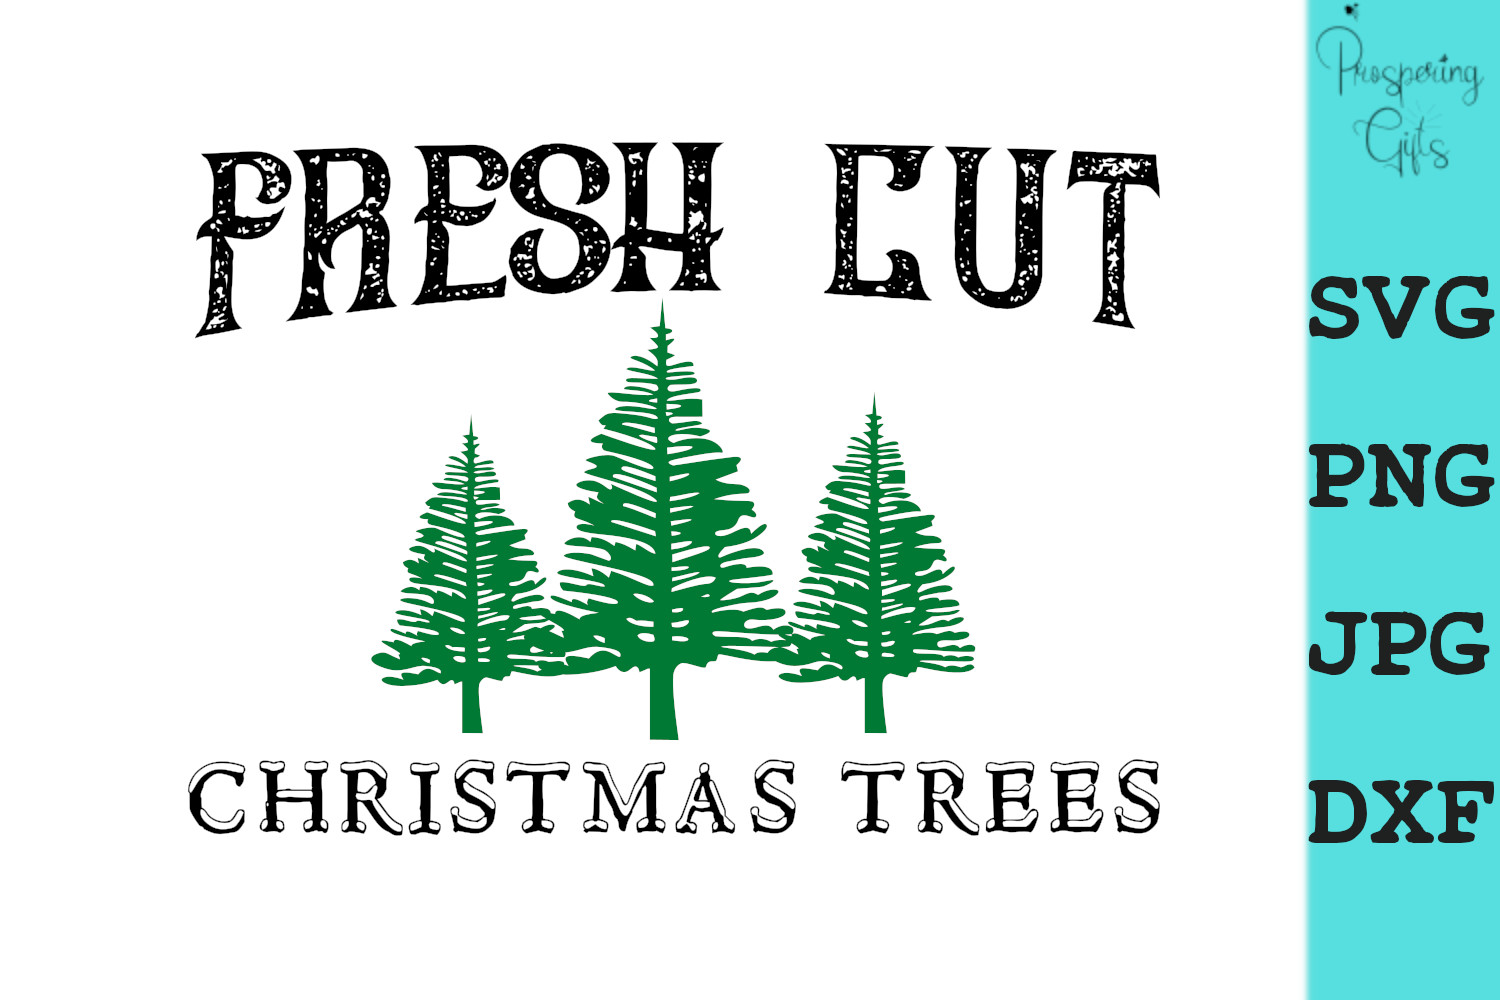 Download Free Christmas Trees Graphic By Prospering Gifts Creative Fabrica for Cricut Explore, Silhouette and other cutting machines.